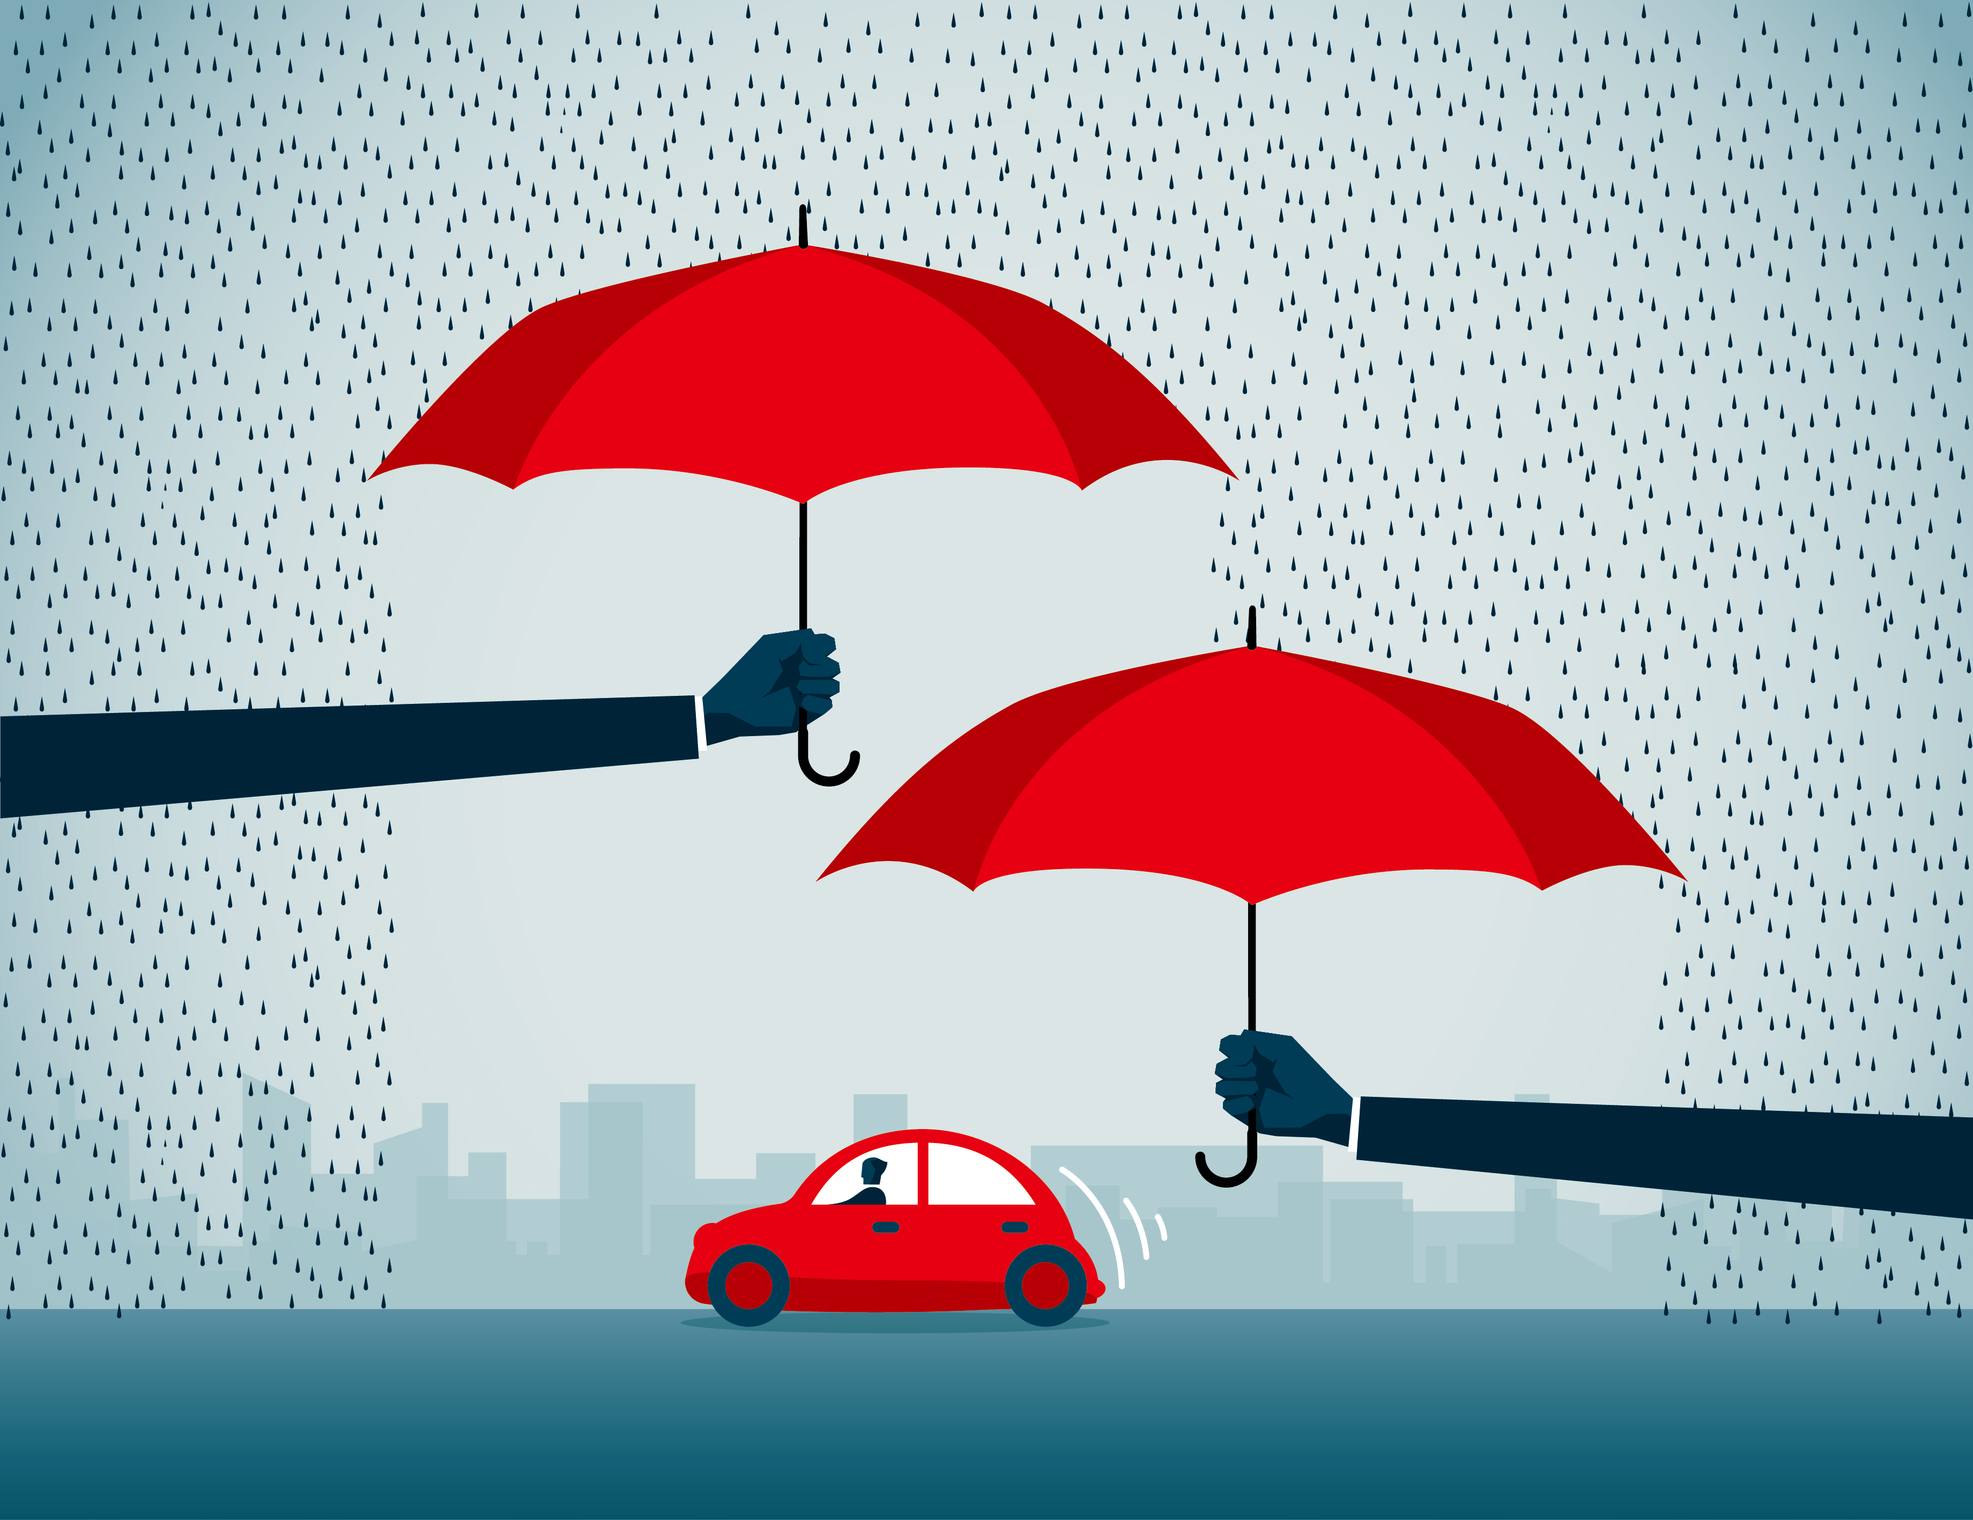 Umbrellas over a car graphic